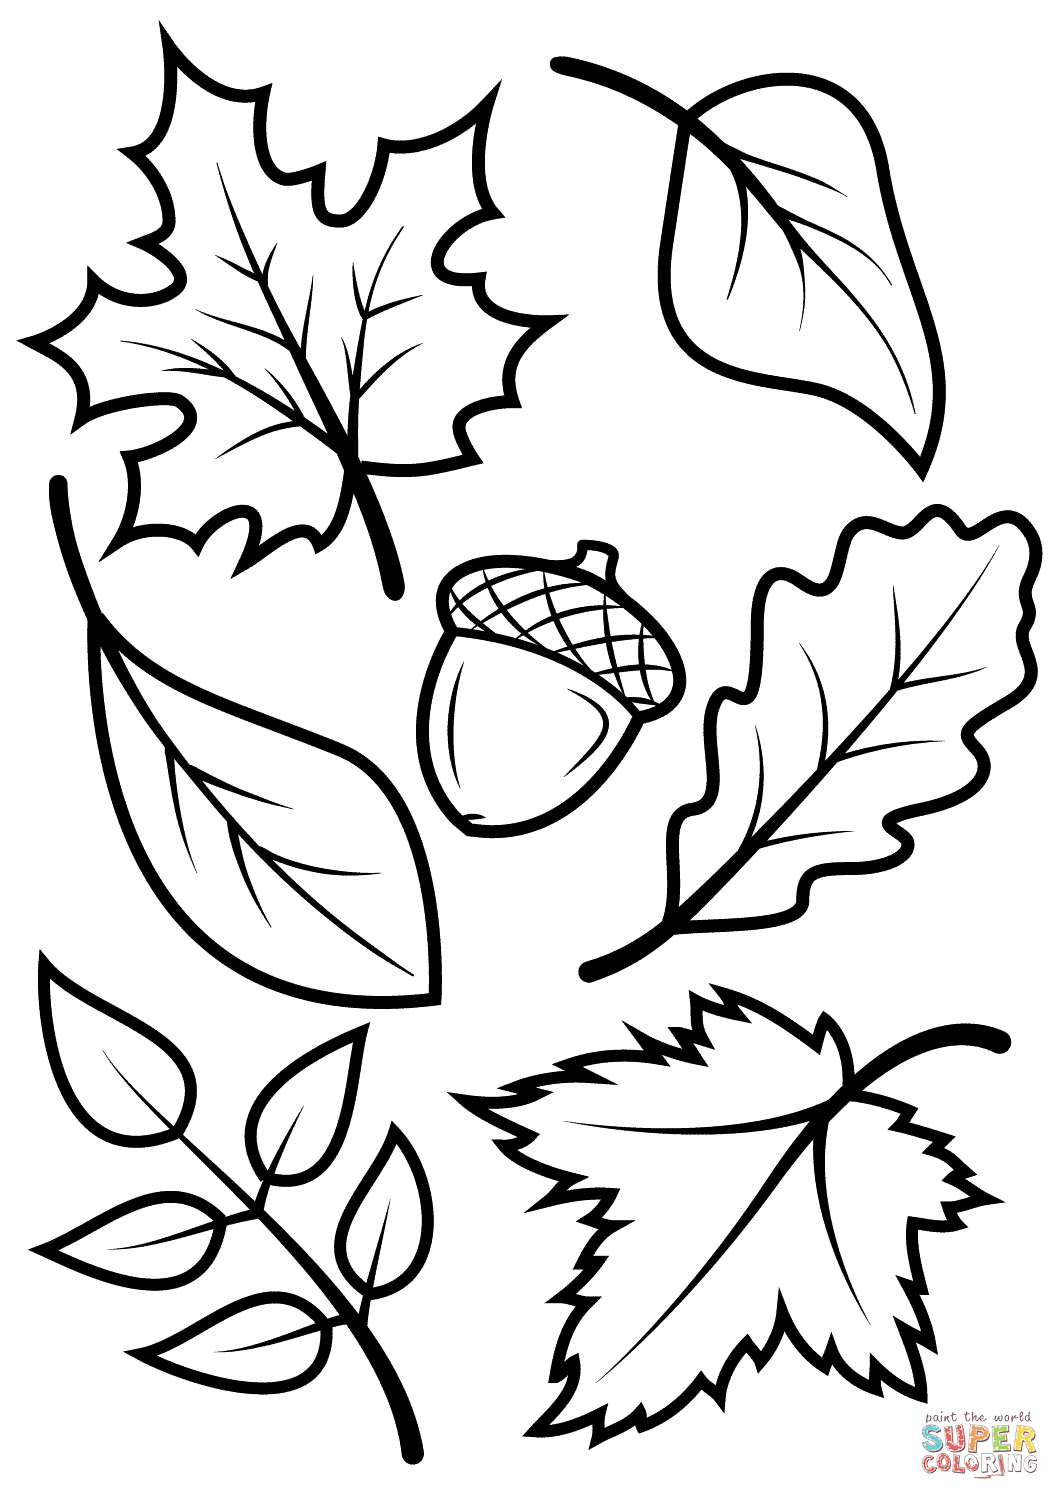 Fall Leaves And Acorn Coloring Page   Free Printable Coloring Pages - Acorn Template Free Printable